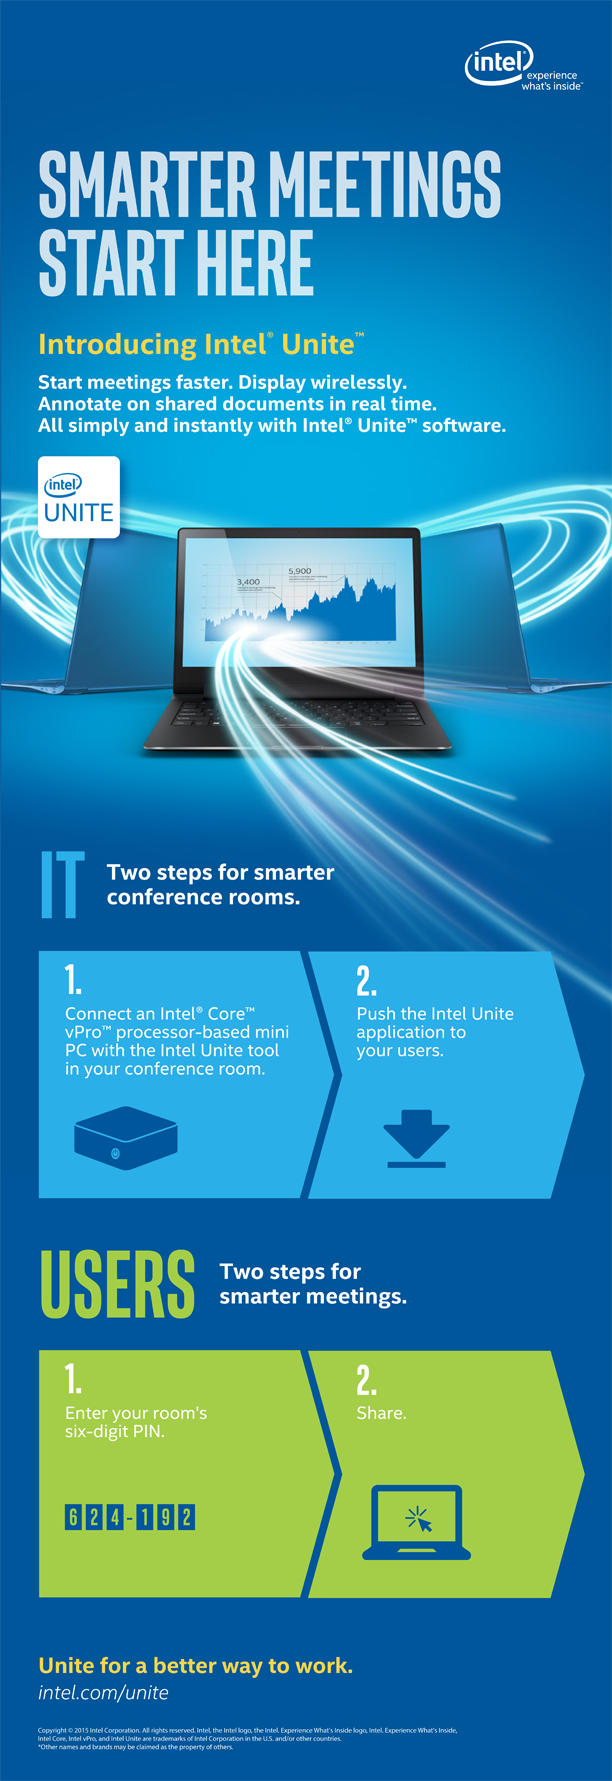 smart-meetings-start-with-intel-unite-infographic